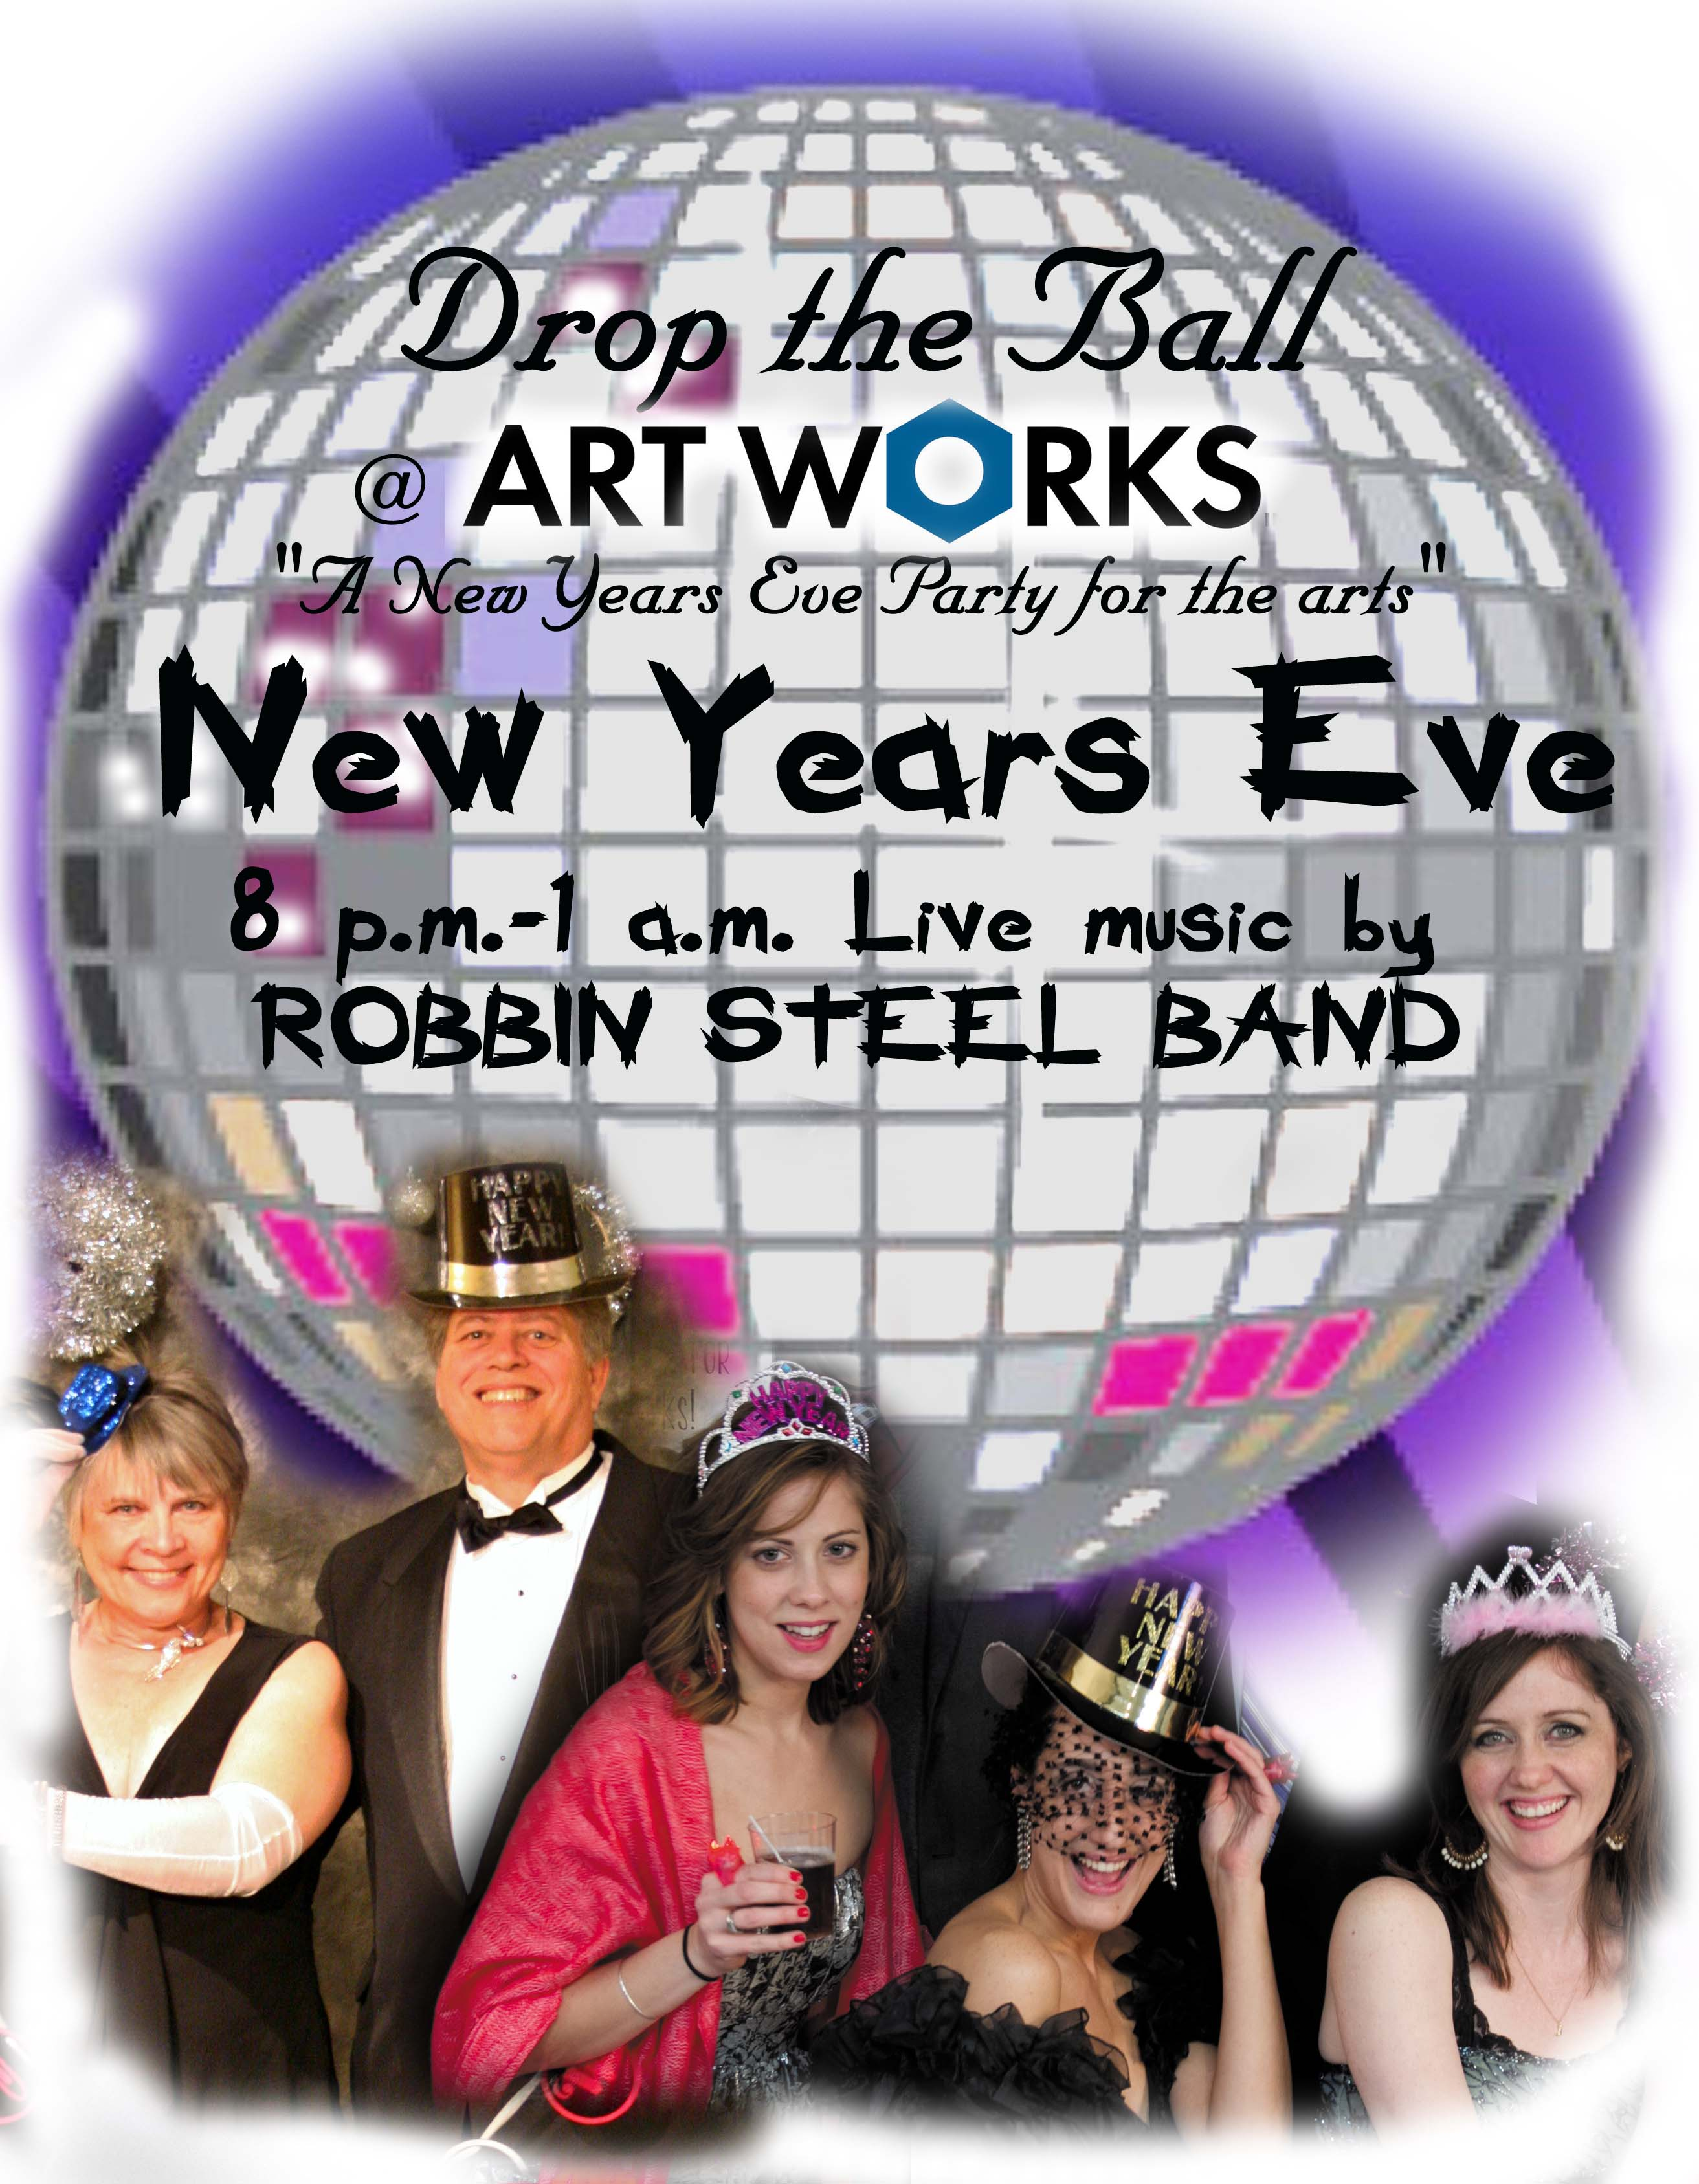 New Years Eve at Art Works